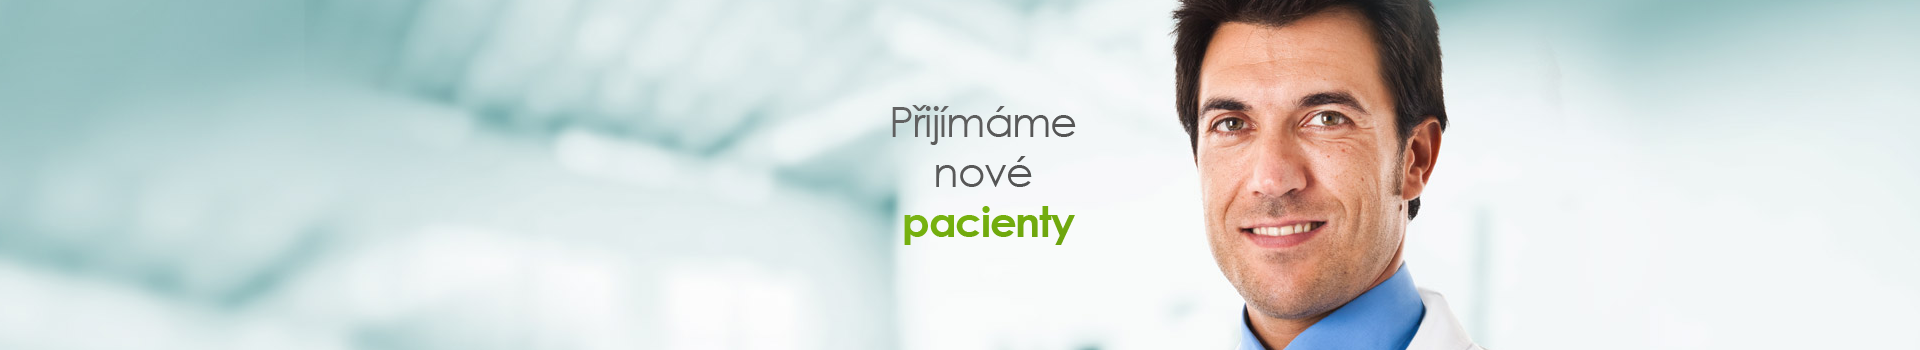 prijimamenovepacienty